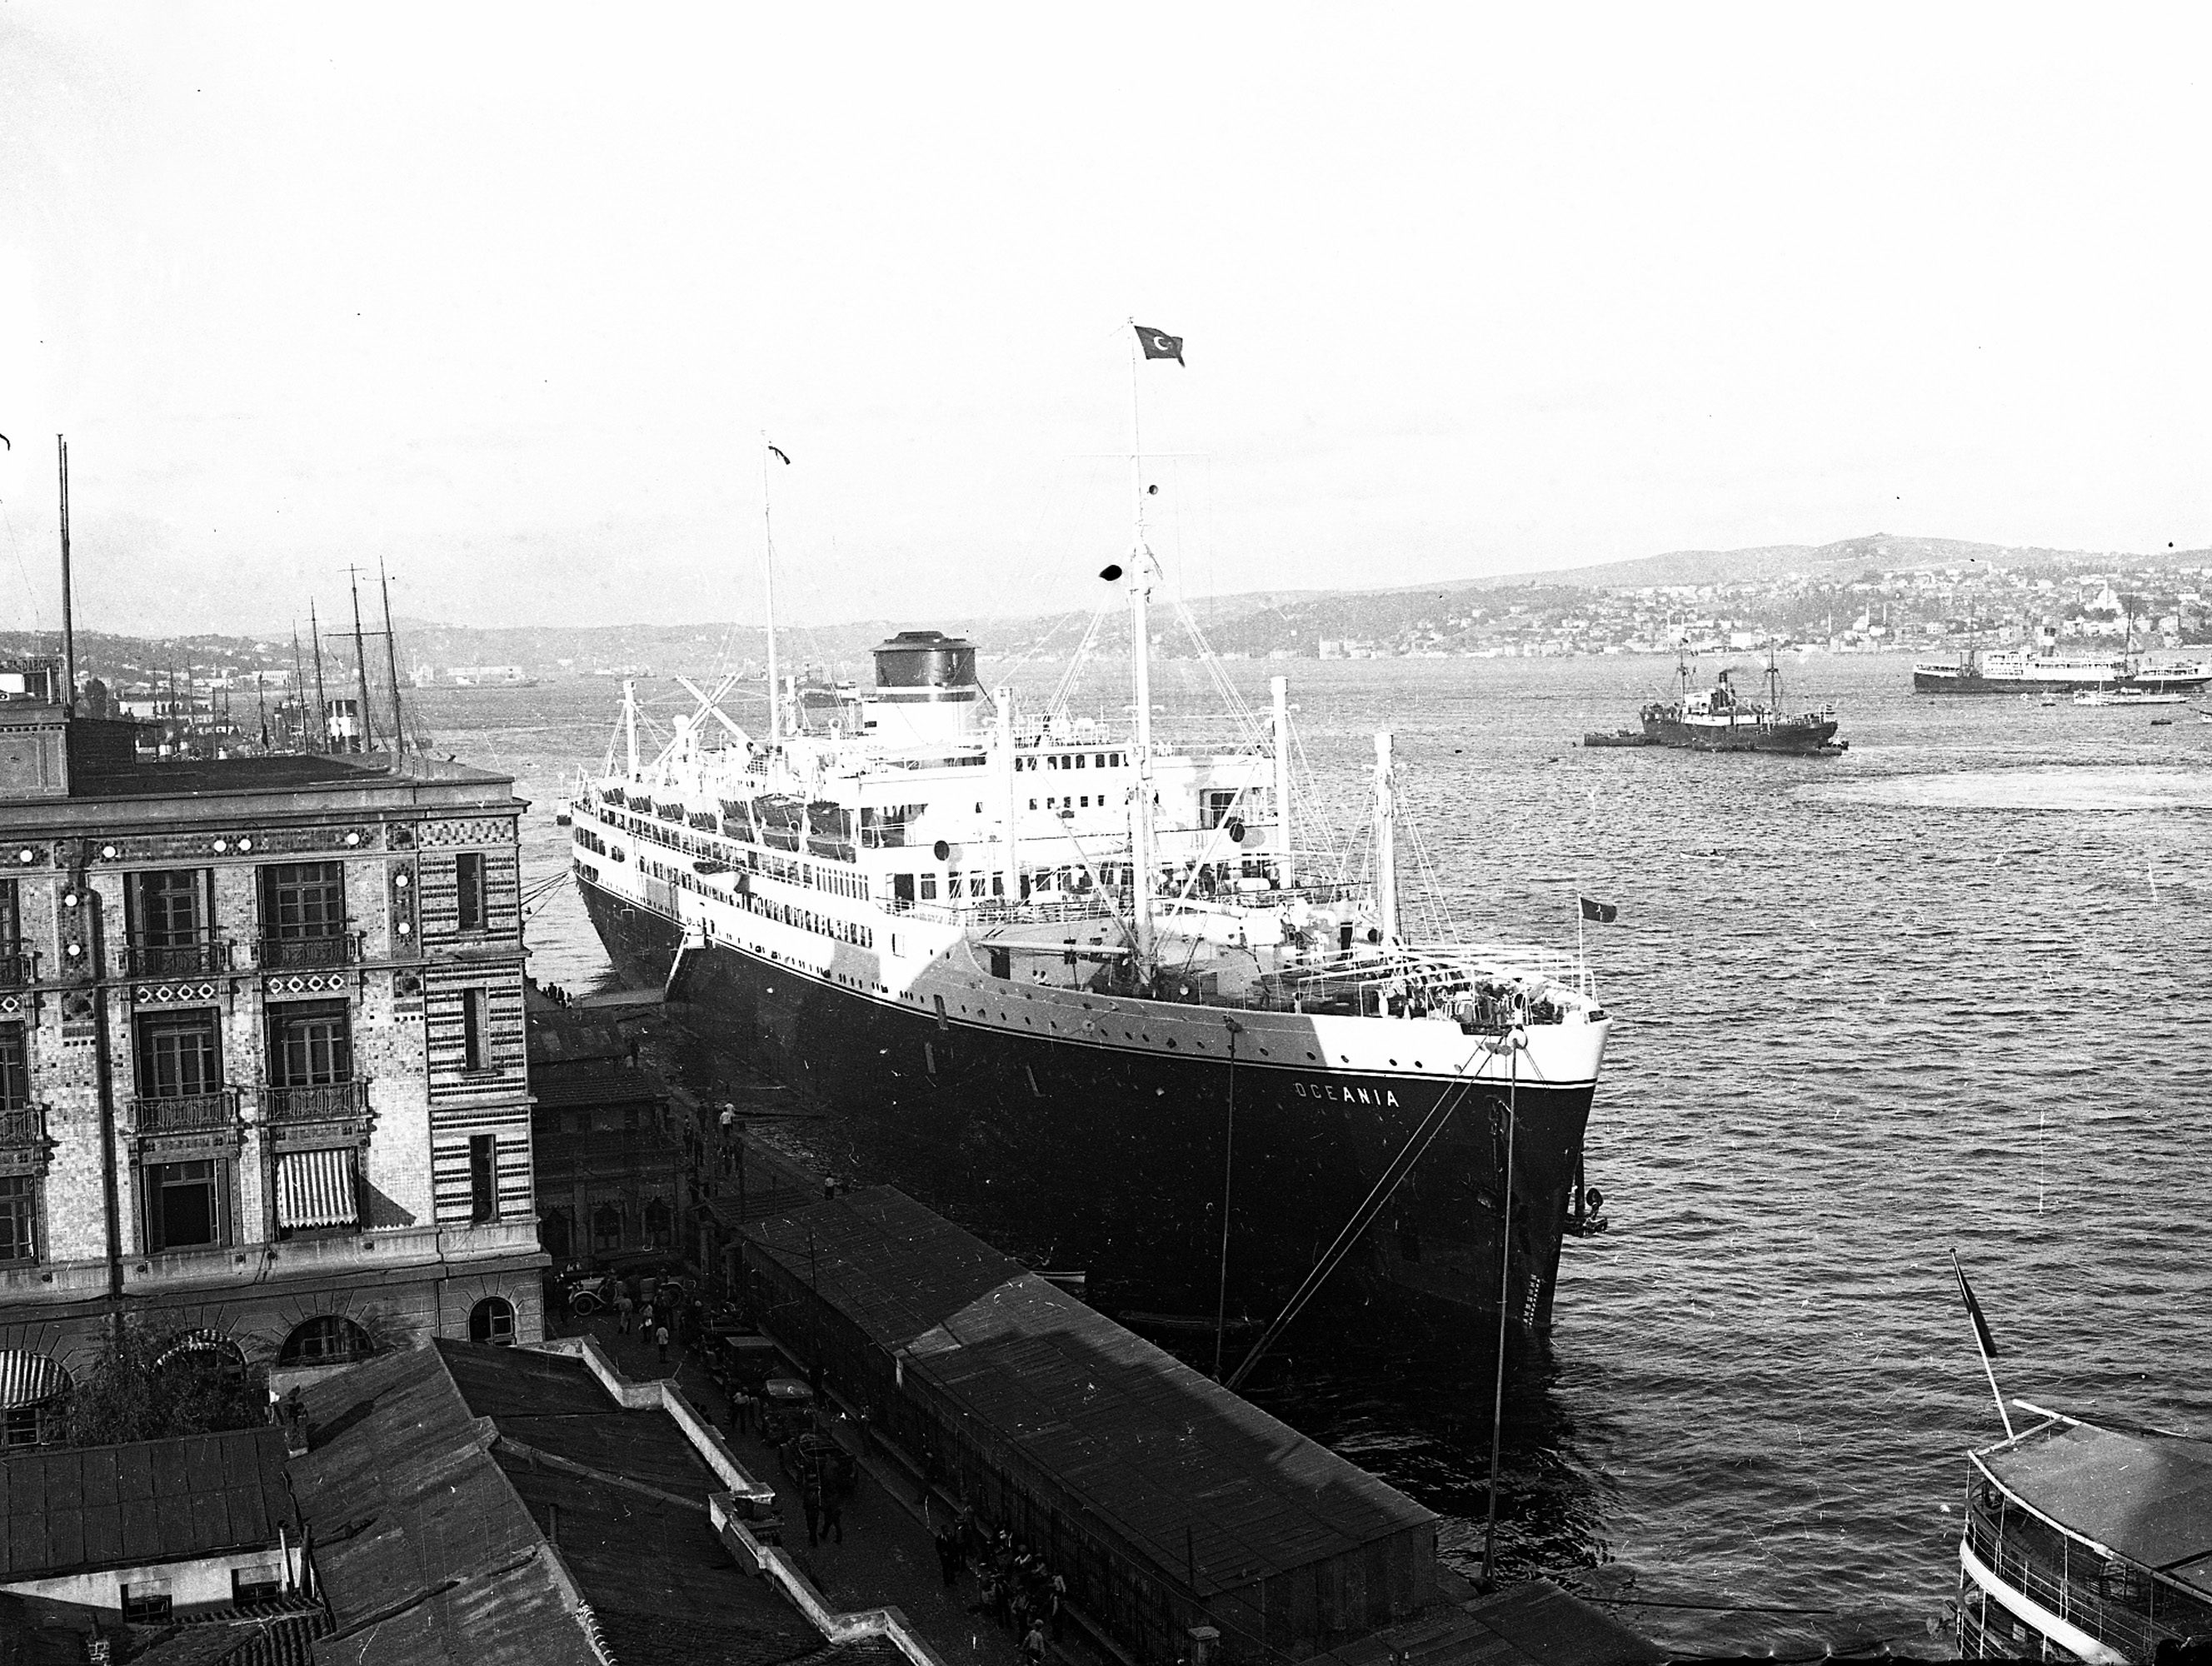 Oceania cruise ship at Karaköy pier.